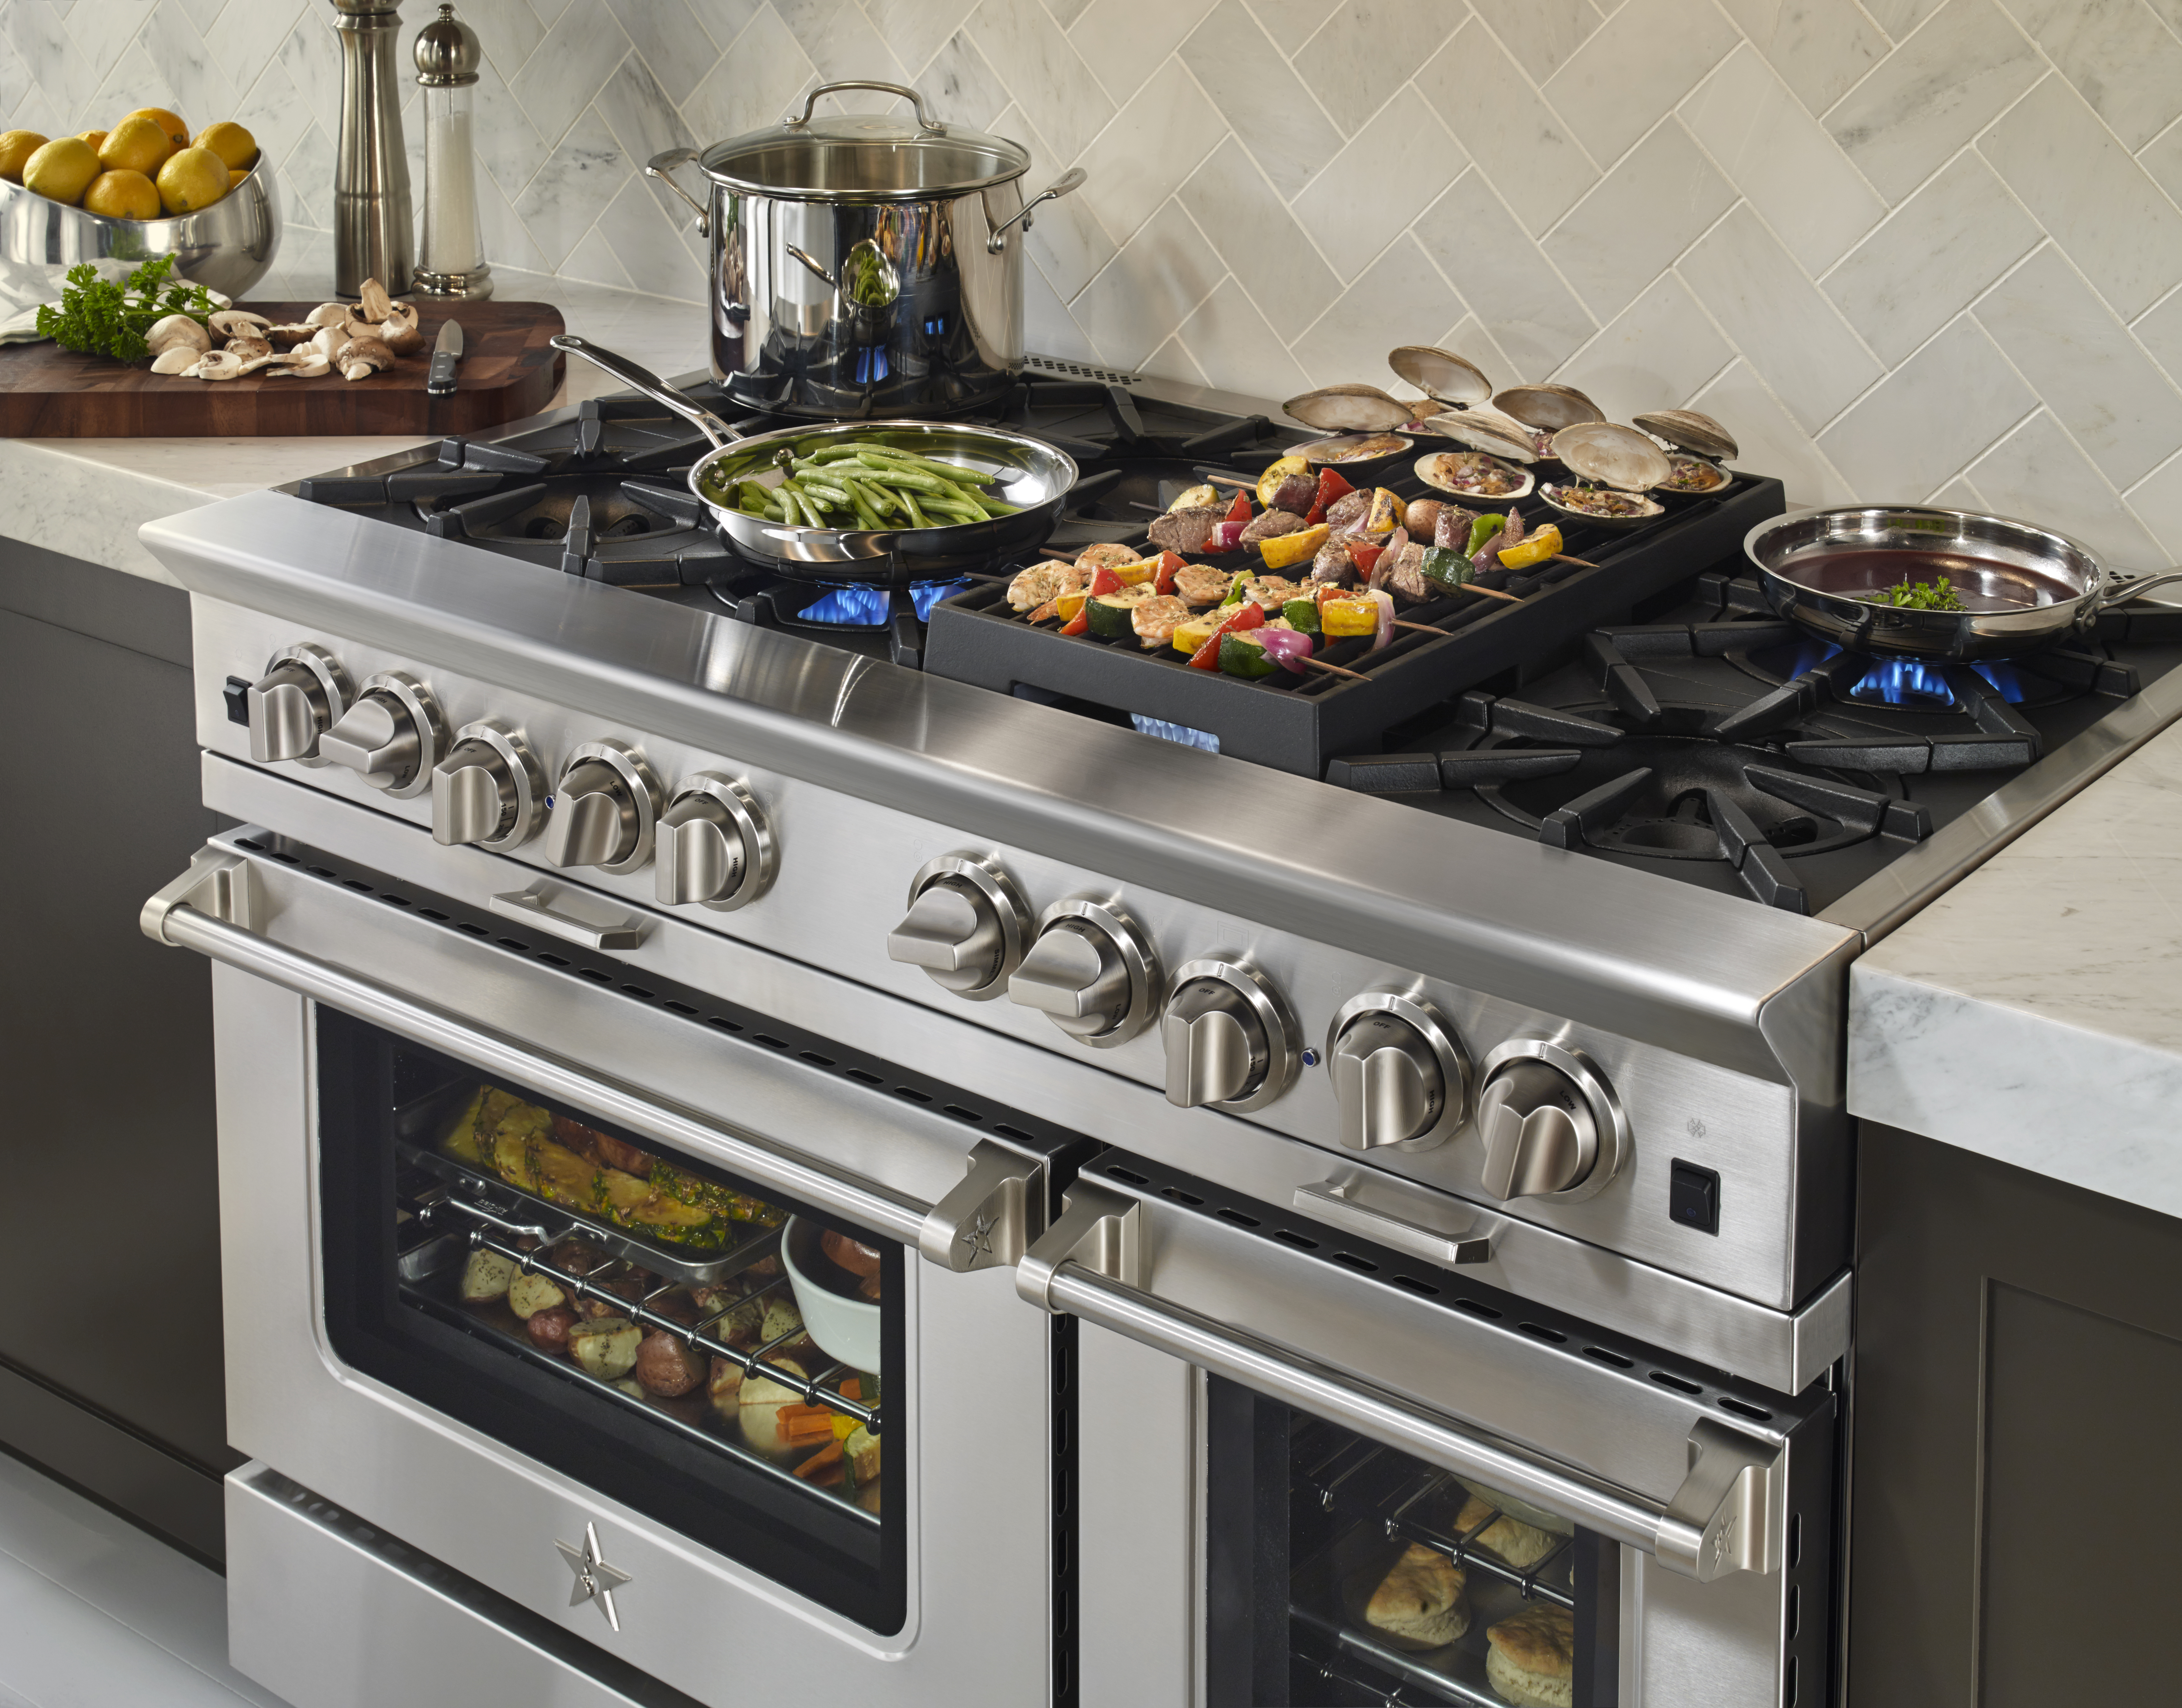 Home Kitchen Cooking bluestar cooking | kbtribechat